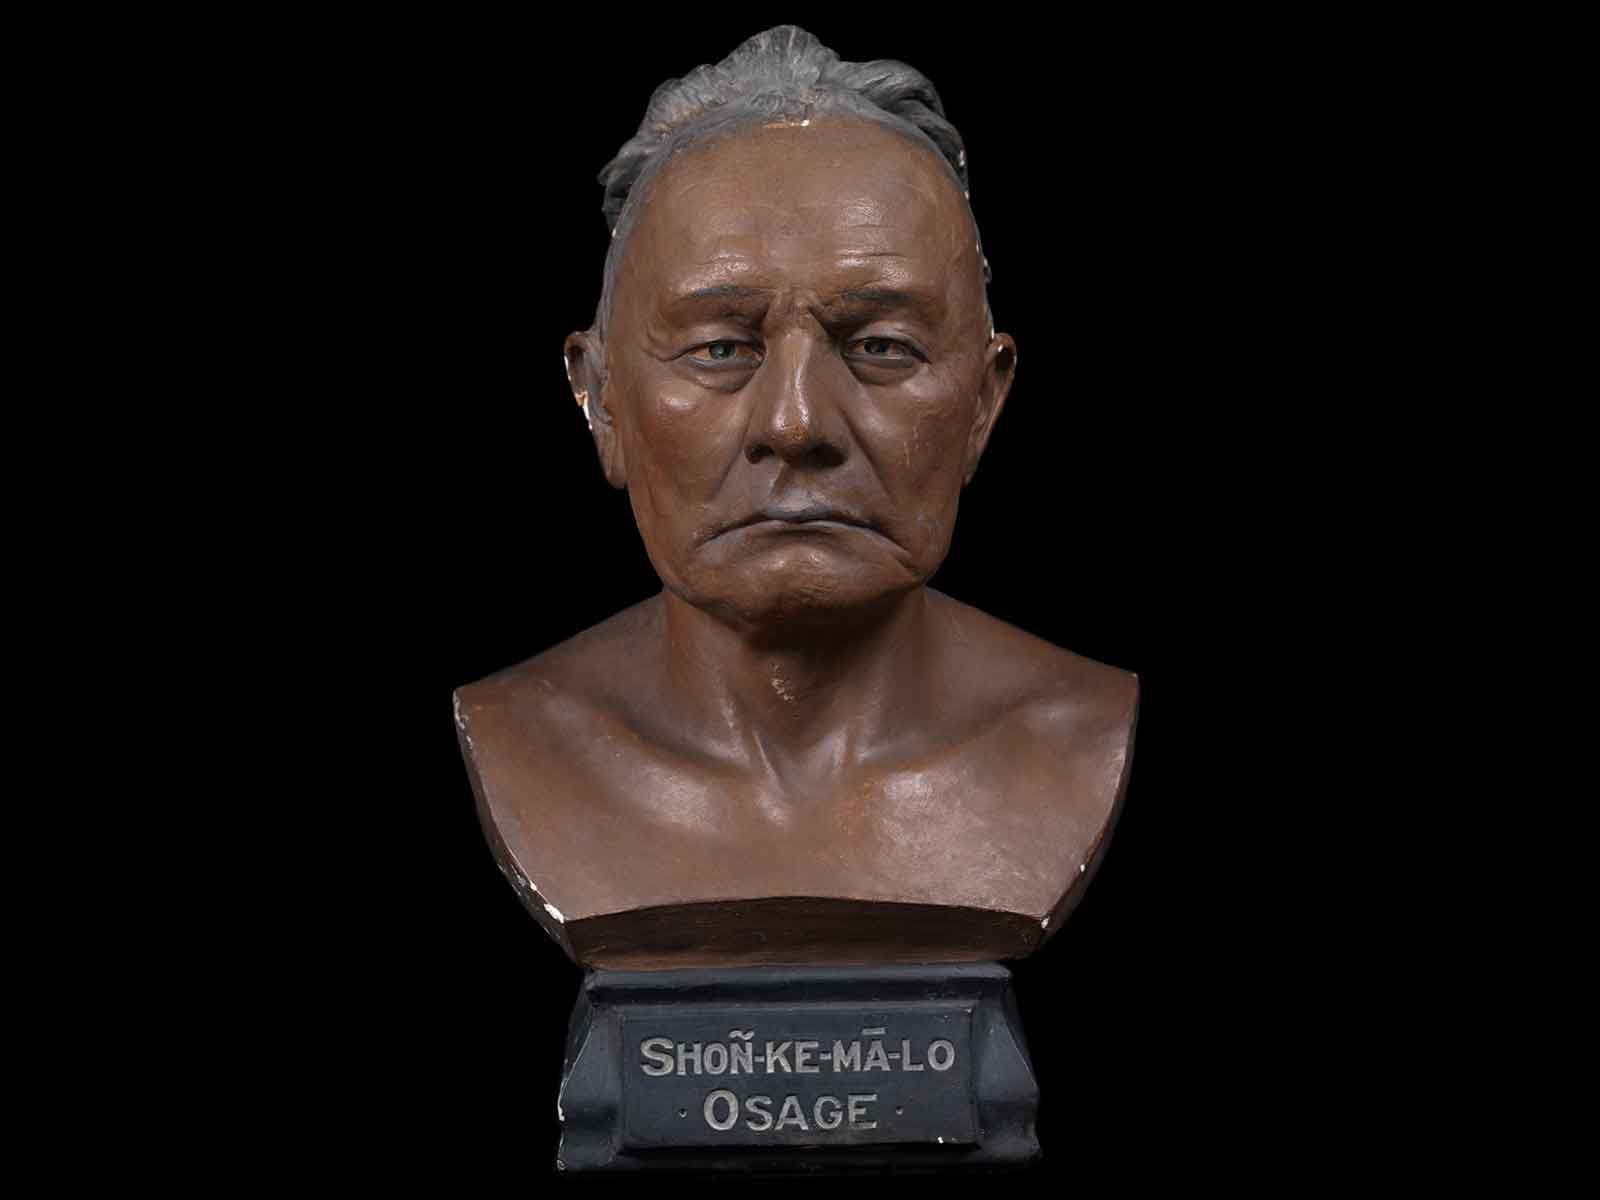 Recognition of Major Osage Leader and Warrior Opens a New Window Into History